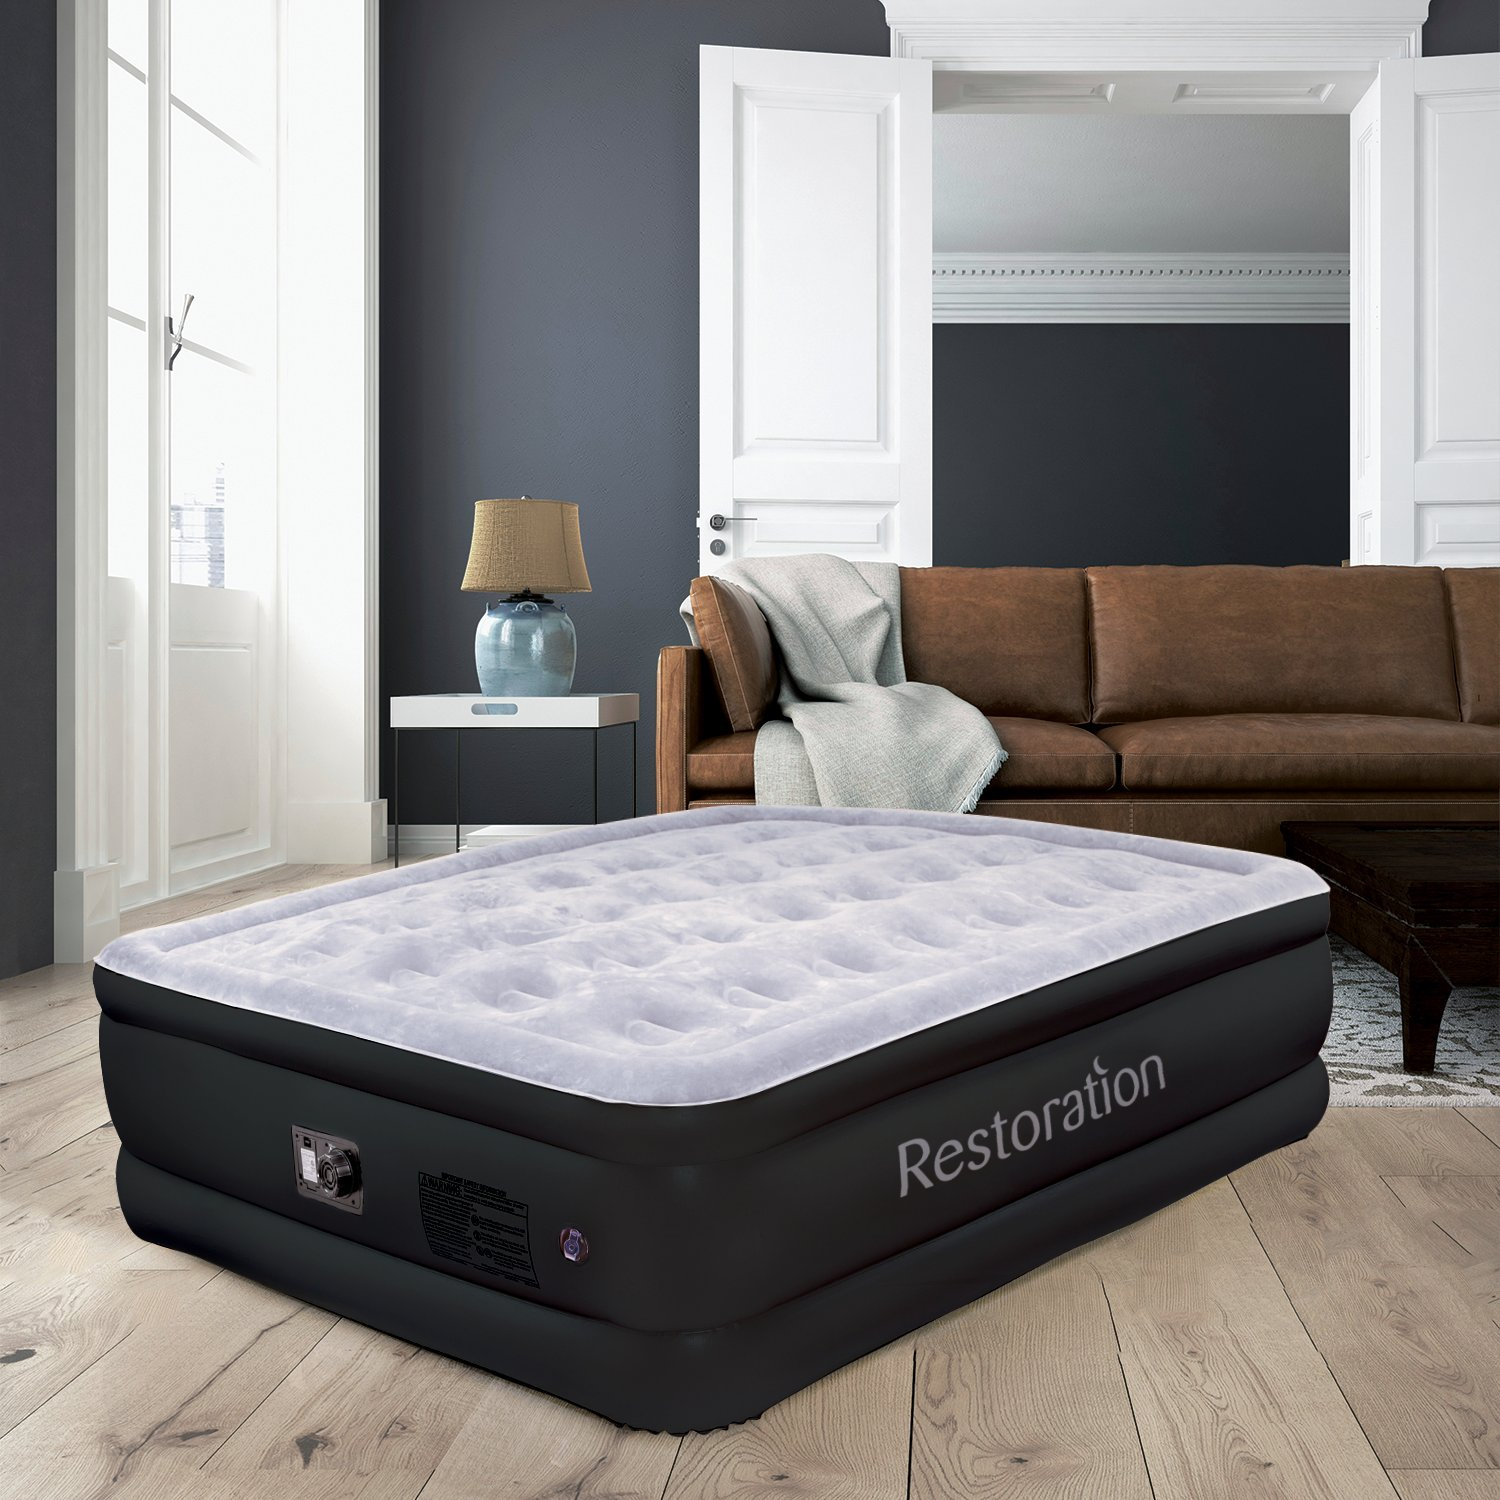 amazon com sleep restoration queen size air mattress best